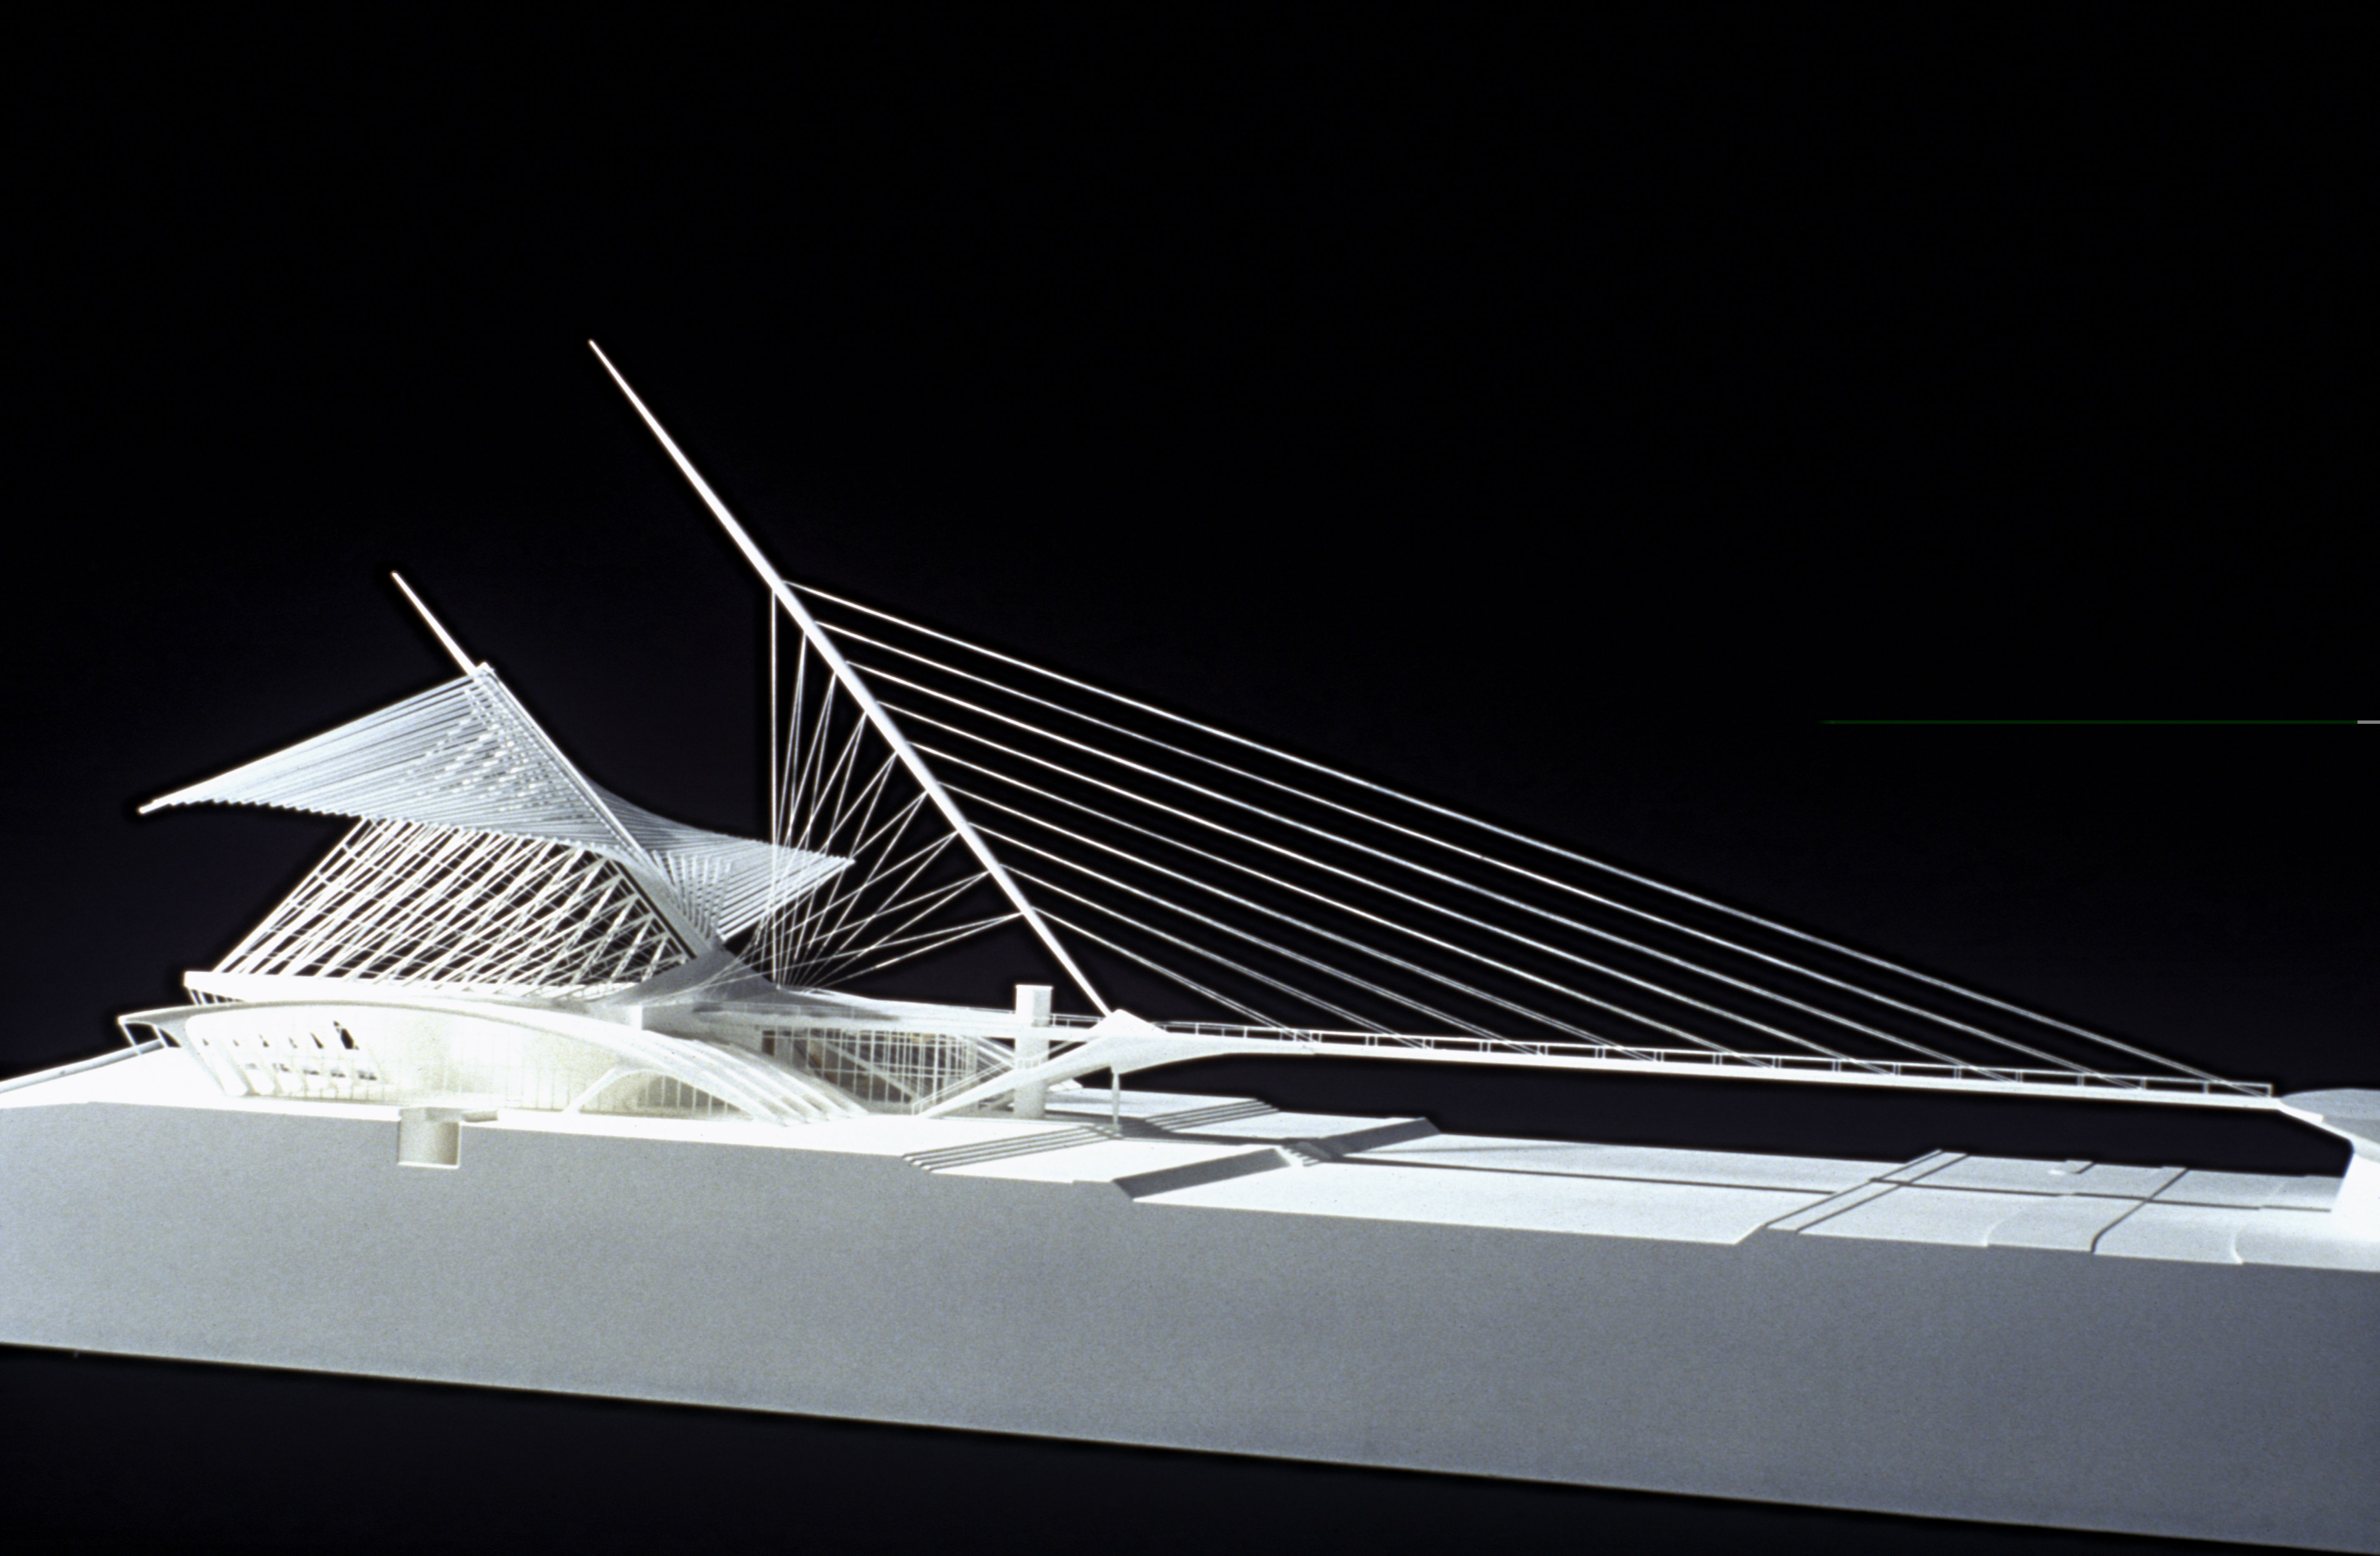 Santiago Calatrava design architecture exhibit